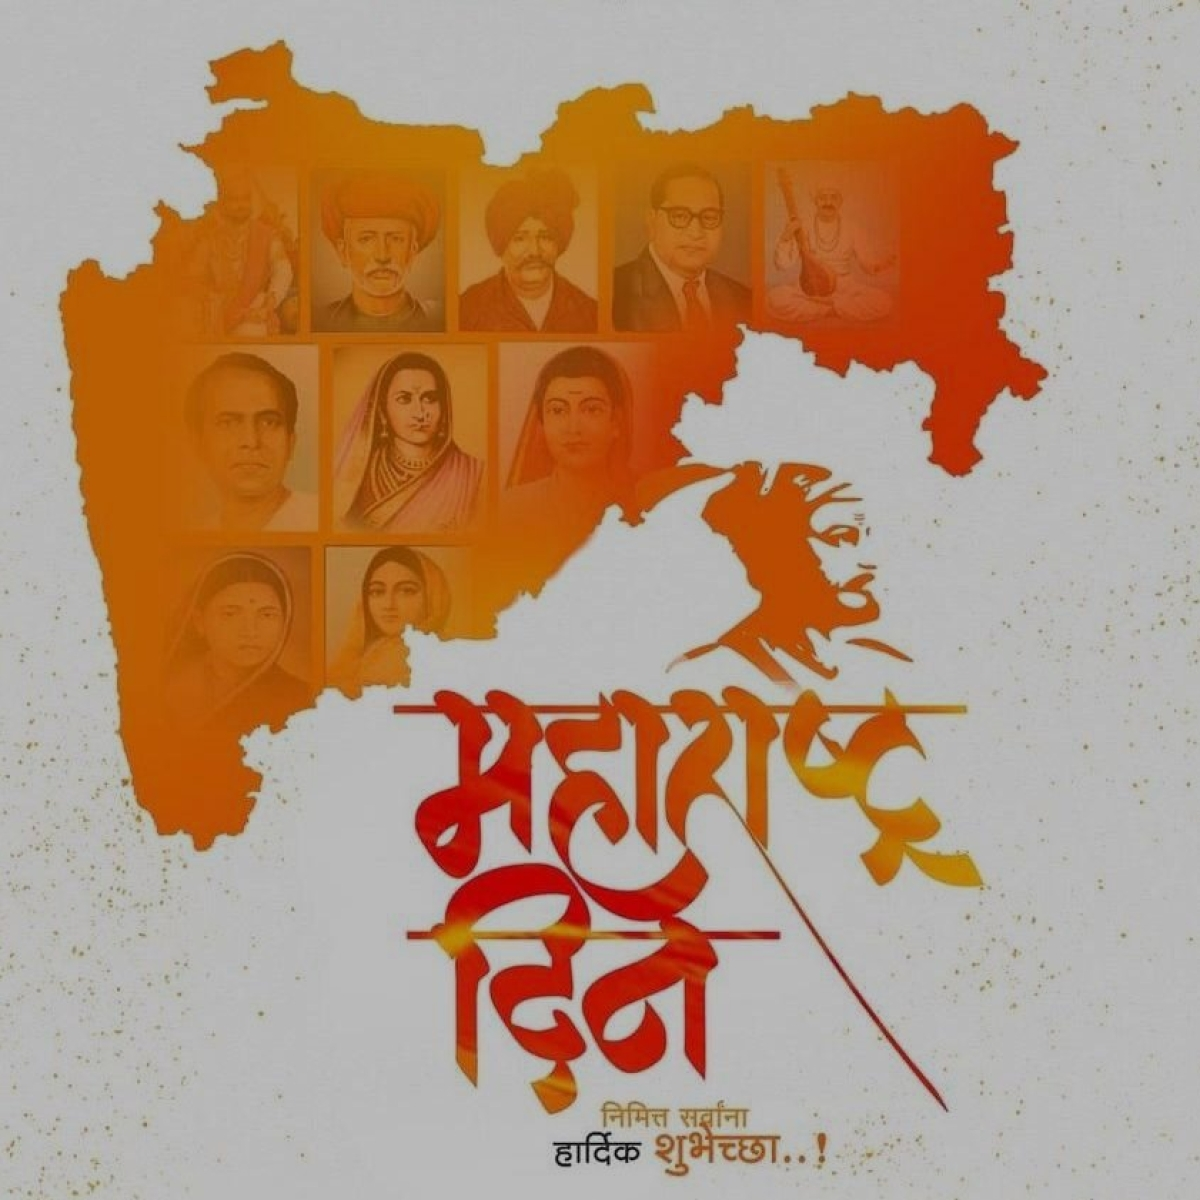 Maharashtra Day 2021: Wishes and messages in Marathi to share on WhatsApp, Facebook and SMS